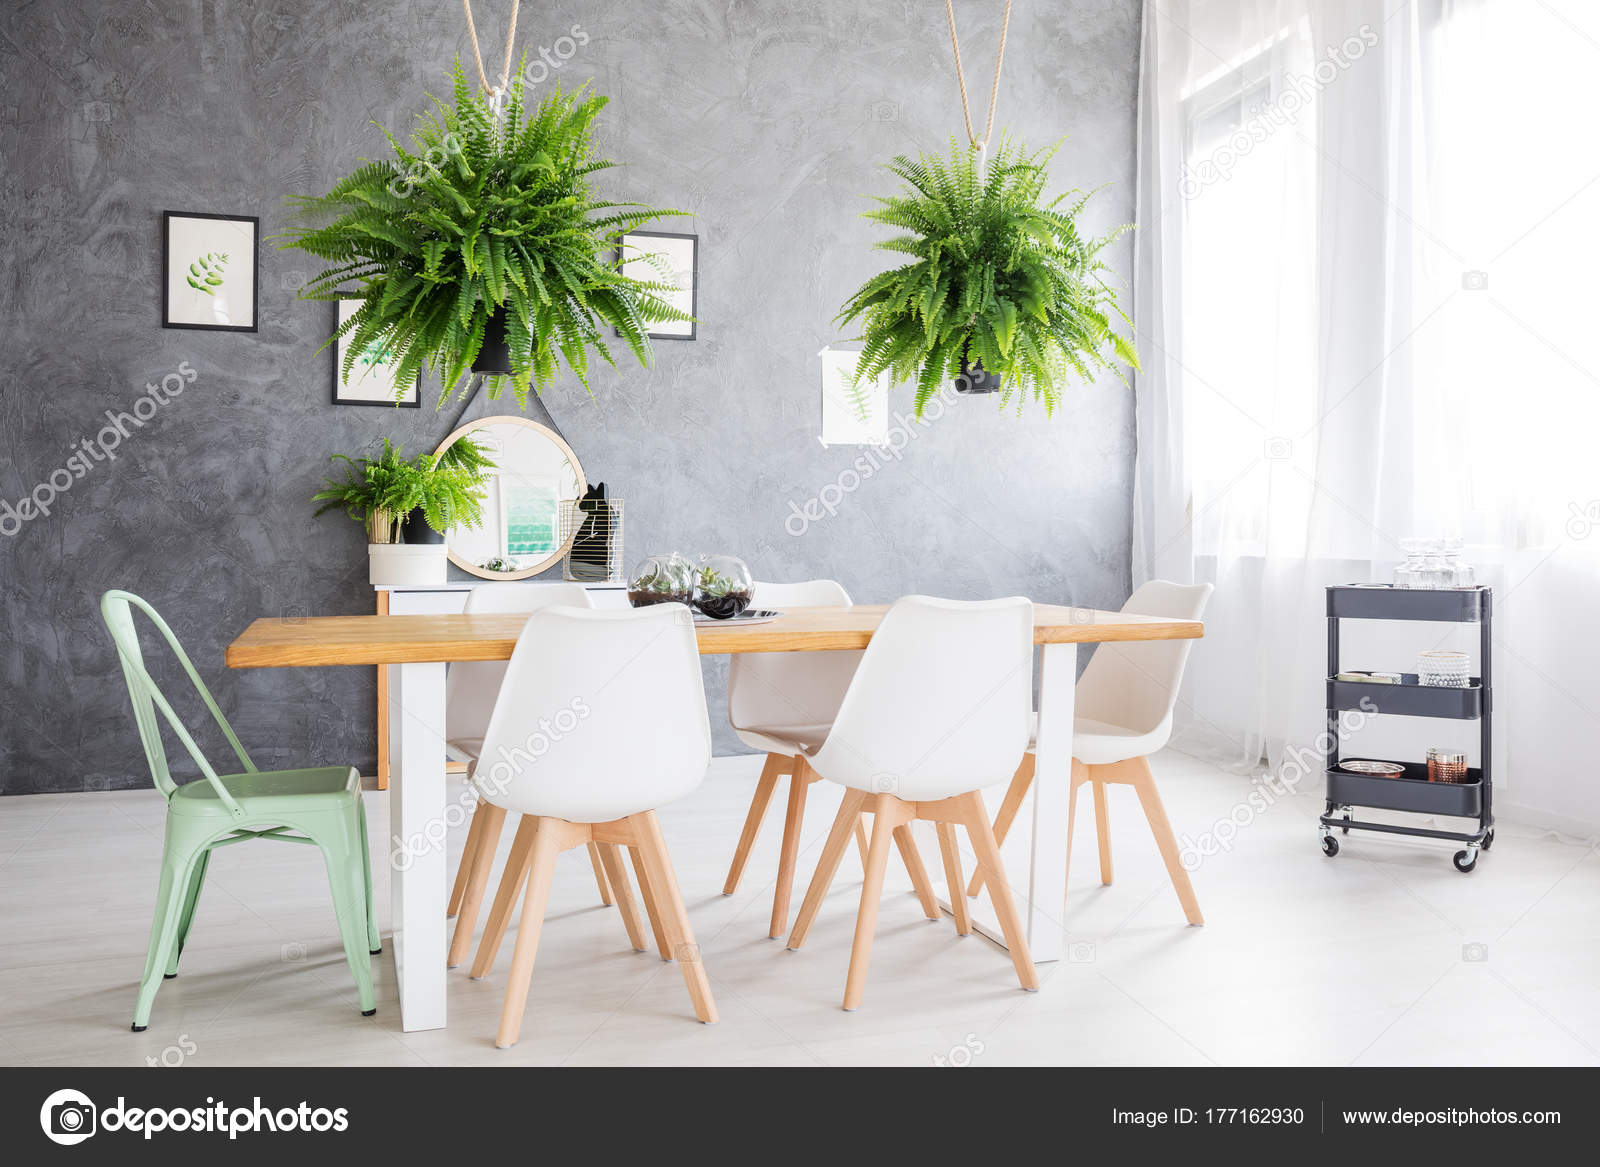 Mirror In A Dining Room Stock Photo Image By Photographee Eu 177162930